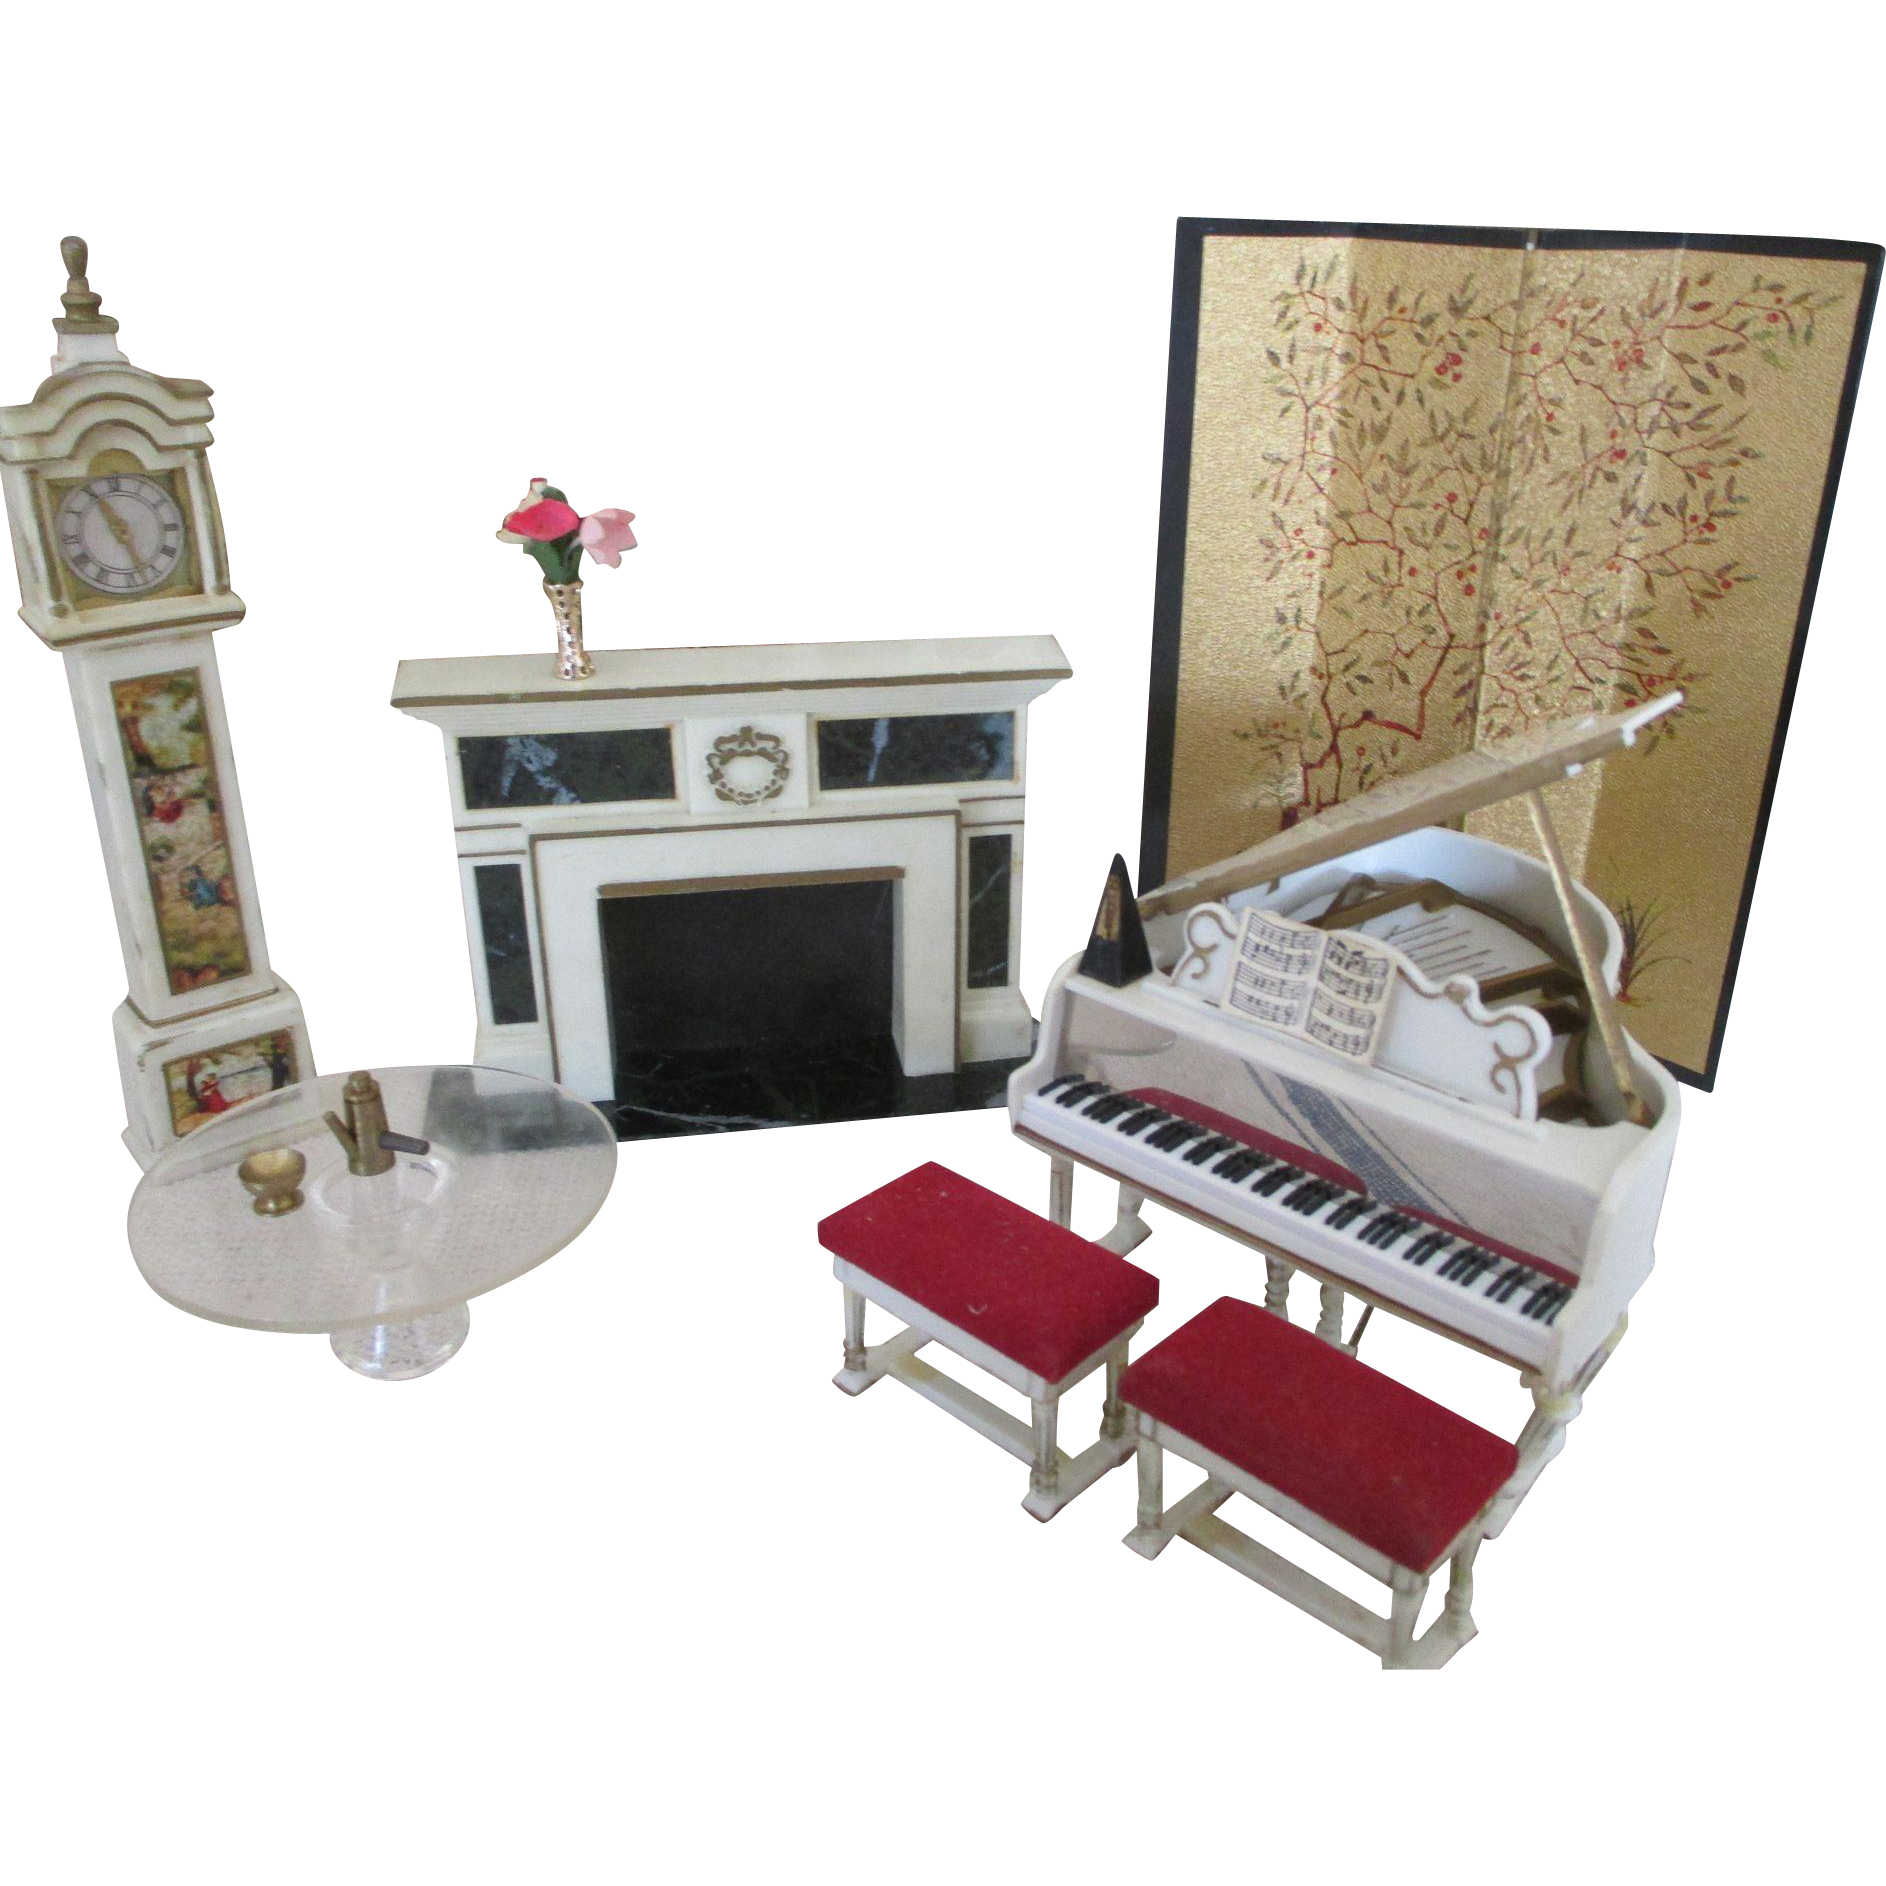 Furniture clipart dollhouse furniture. Vintage doll house images